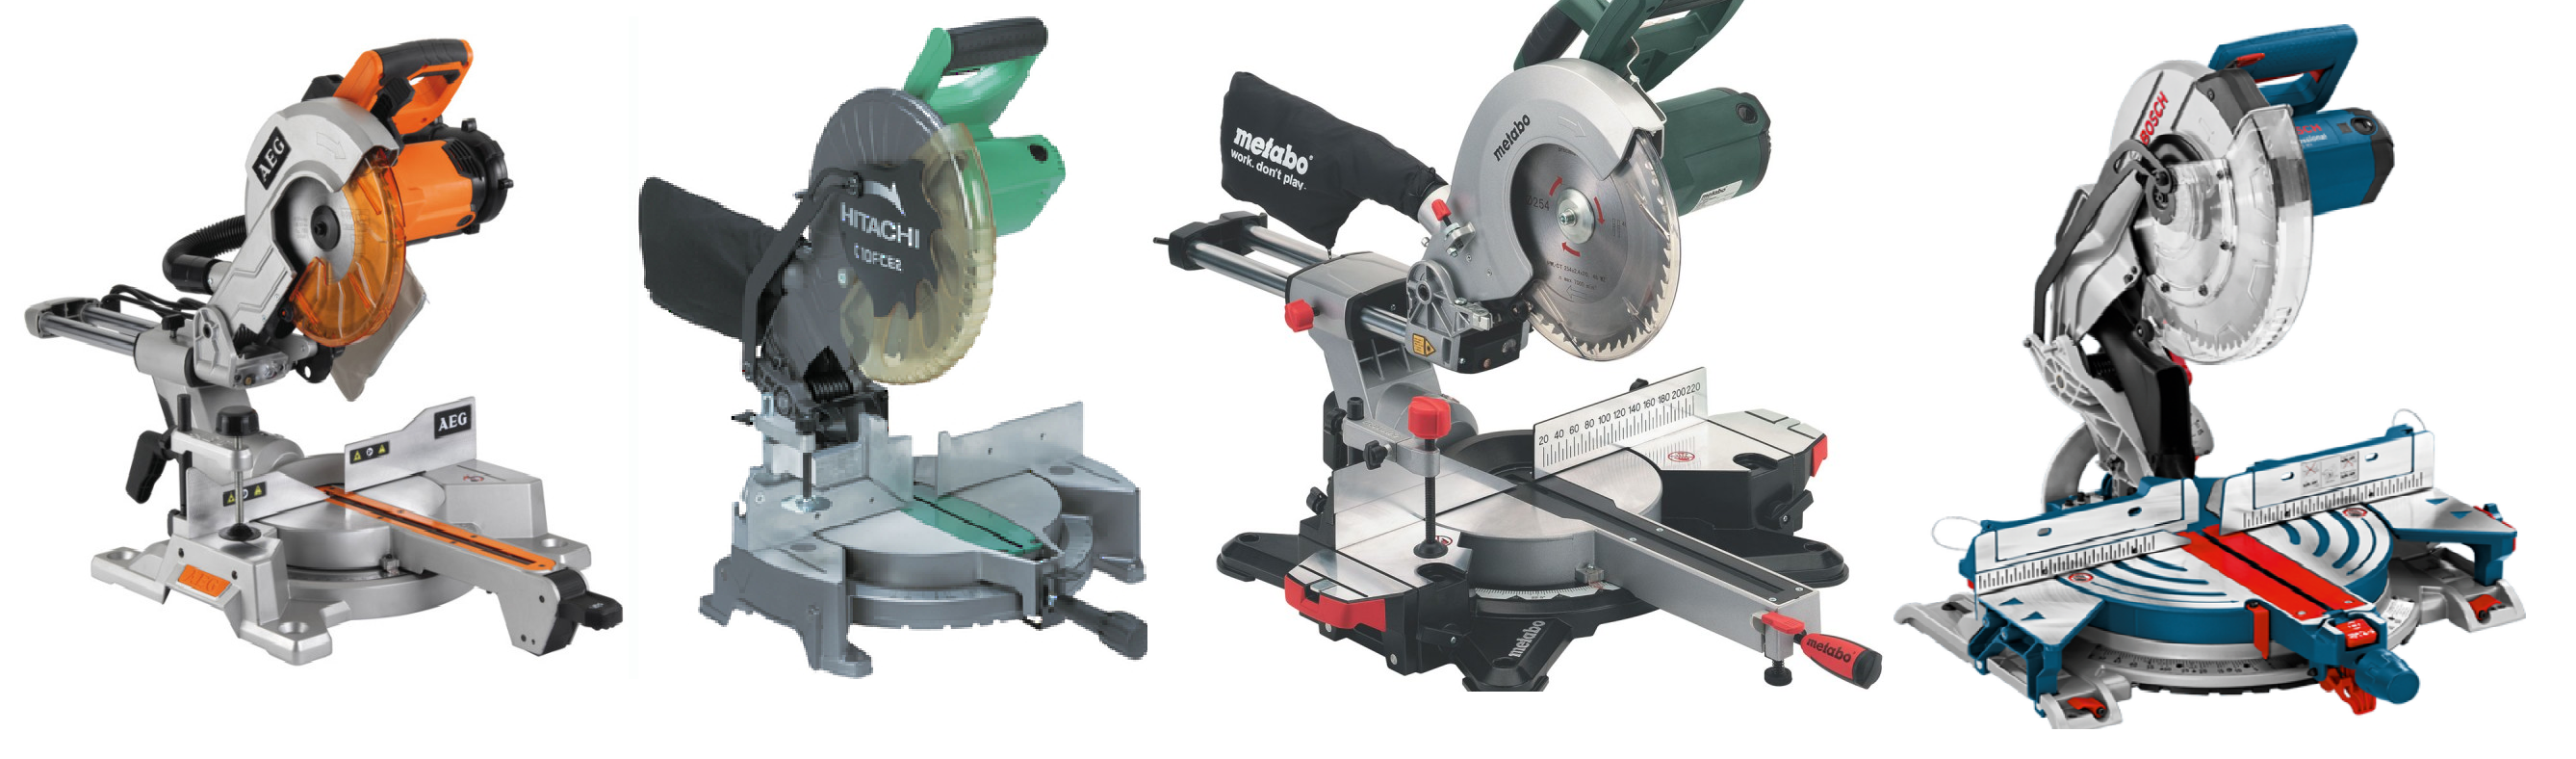 Saw Buy Compound Miter Saw Online For Best Price In India